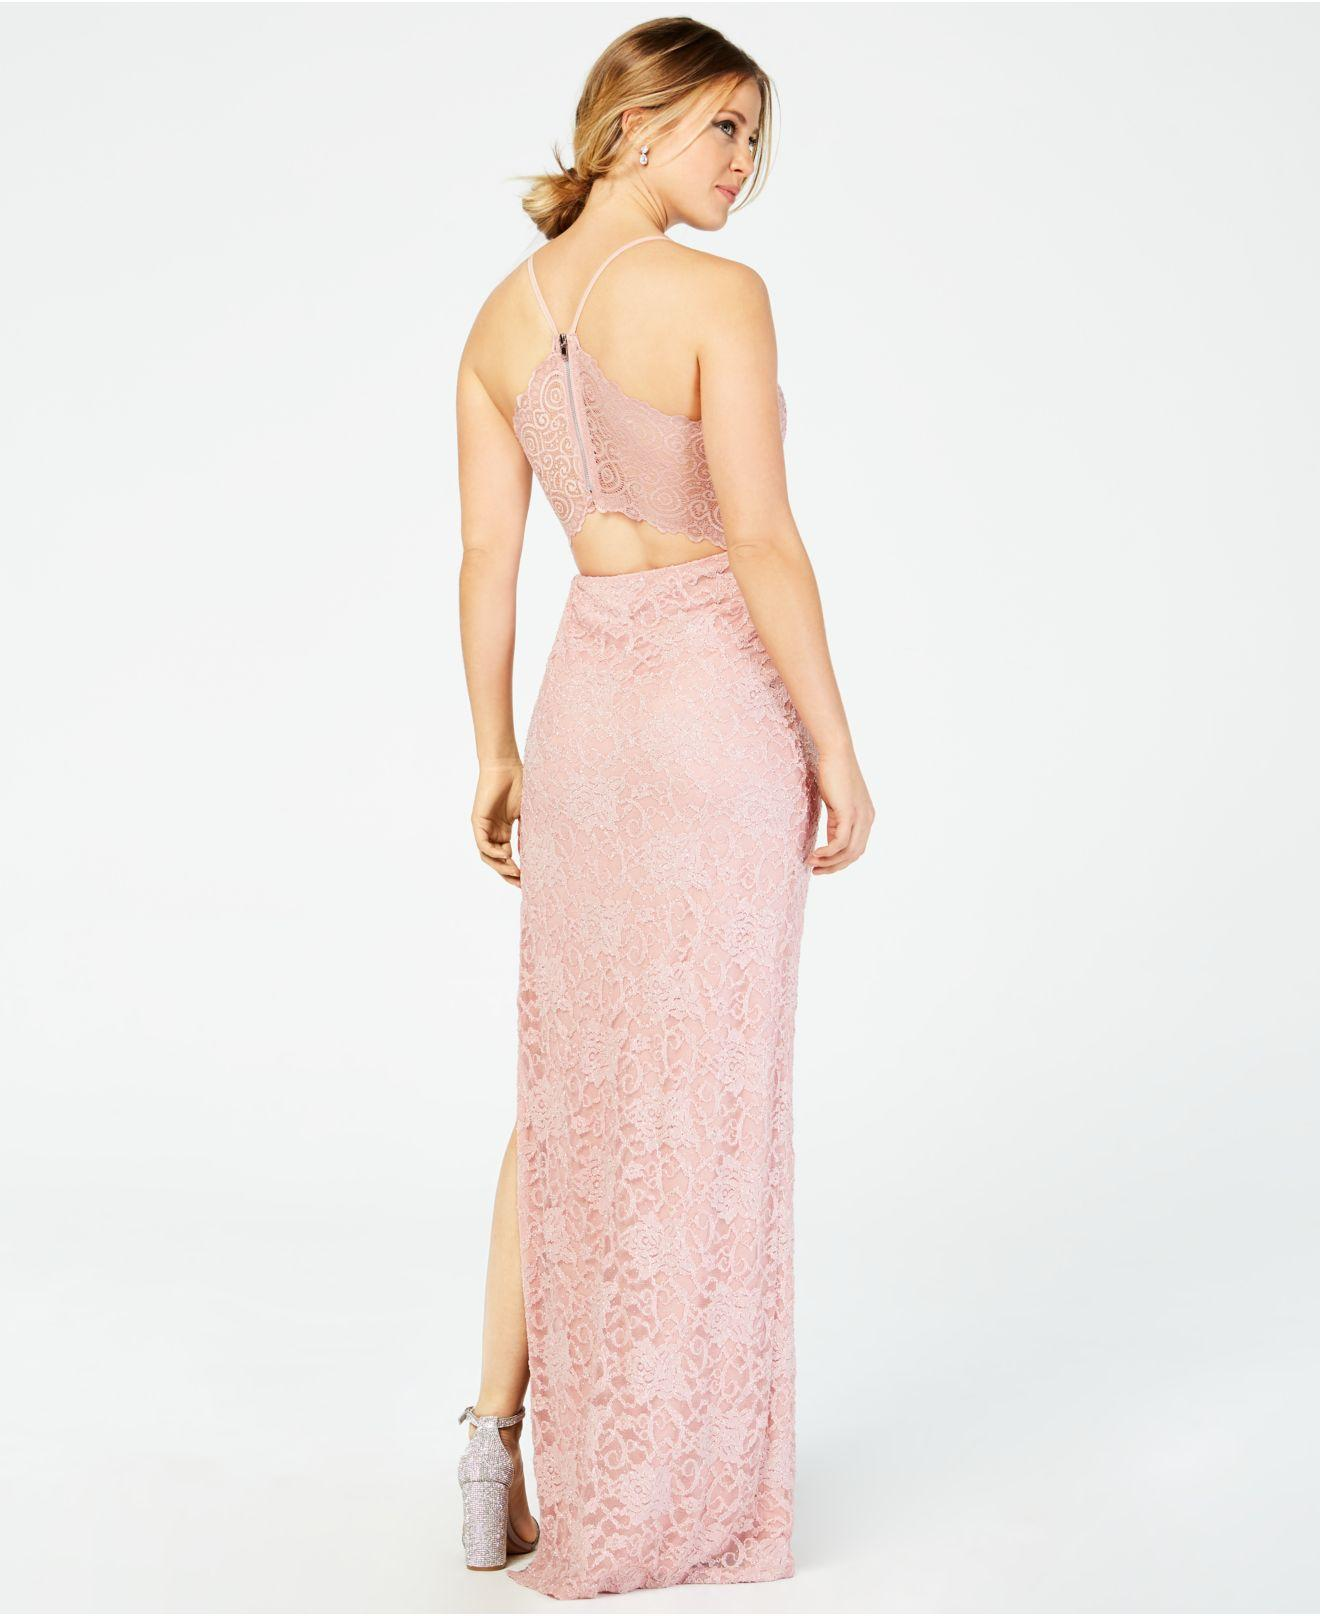 51907020 Emerald Sundae Juniors' Pink-lace Racerback Gown in Pink - Lyst